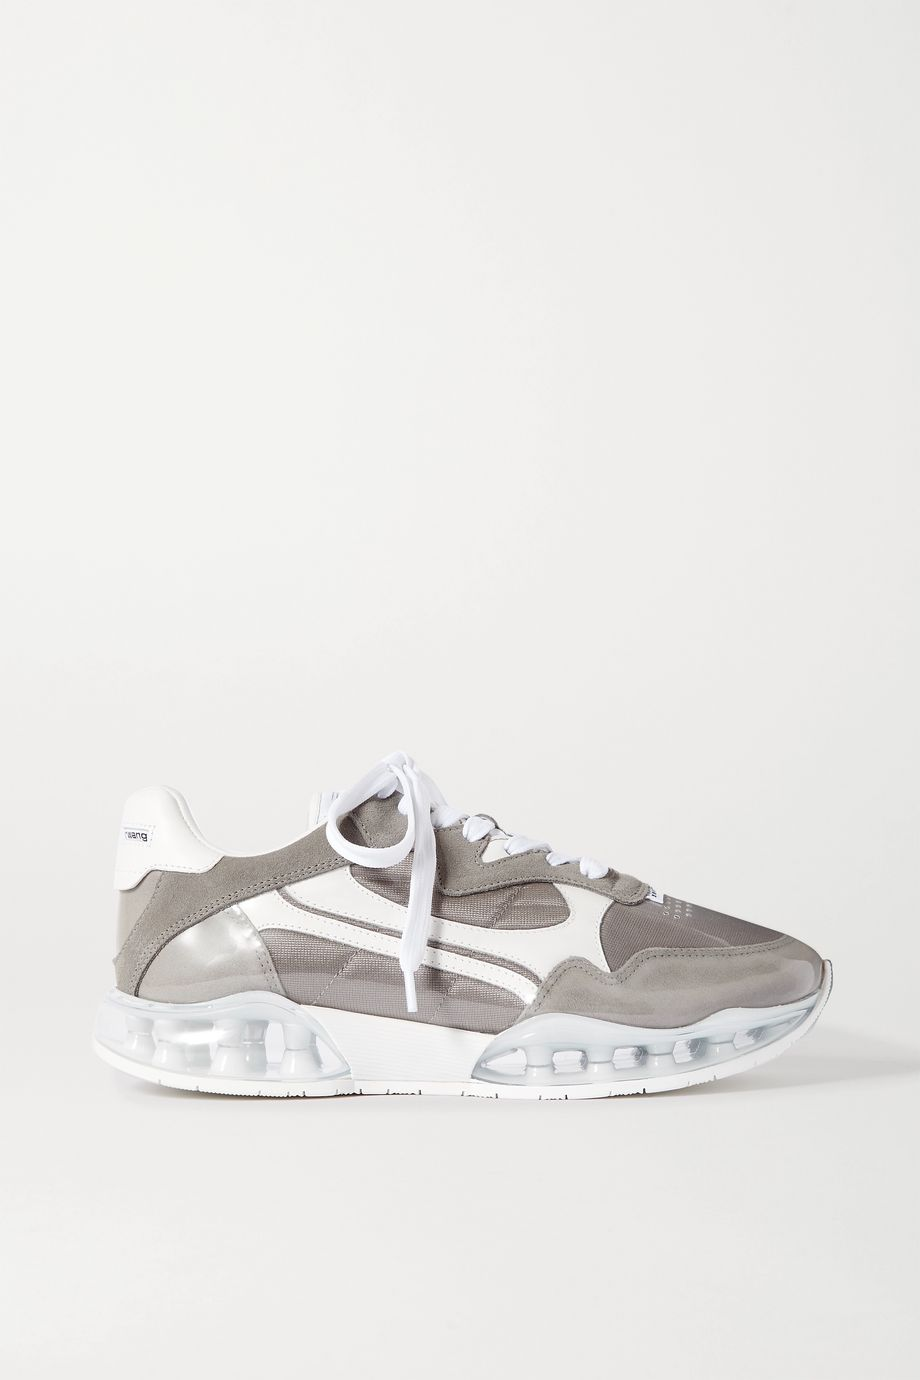 Alexander Wang Stadium PVC, leather, suede and canvas sneakers